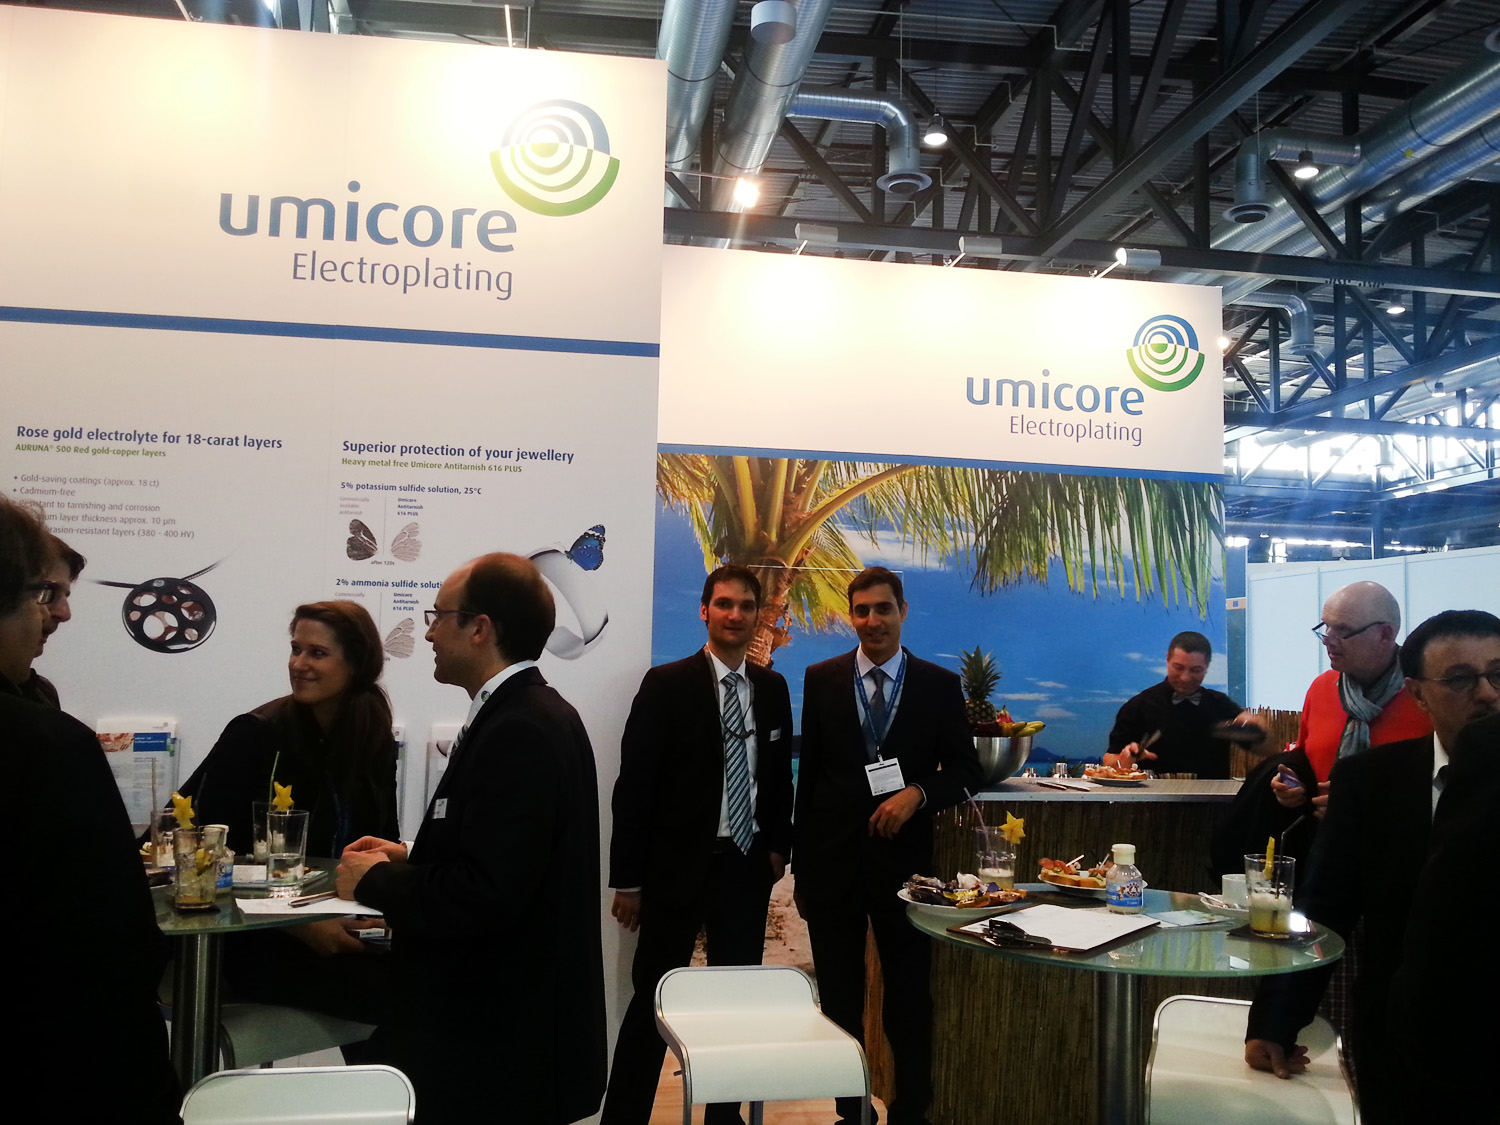 N-Jewellery-Techniques-Director-Mehernosh-Printer-at-Umicore-Stall-in-Freiburg-exhibition-Germany-March-2015-2